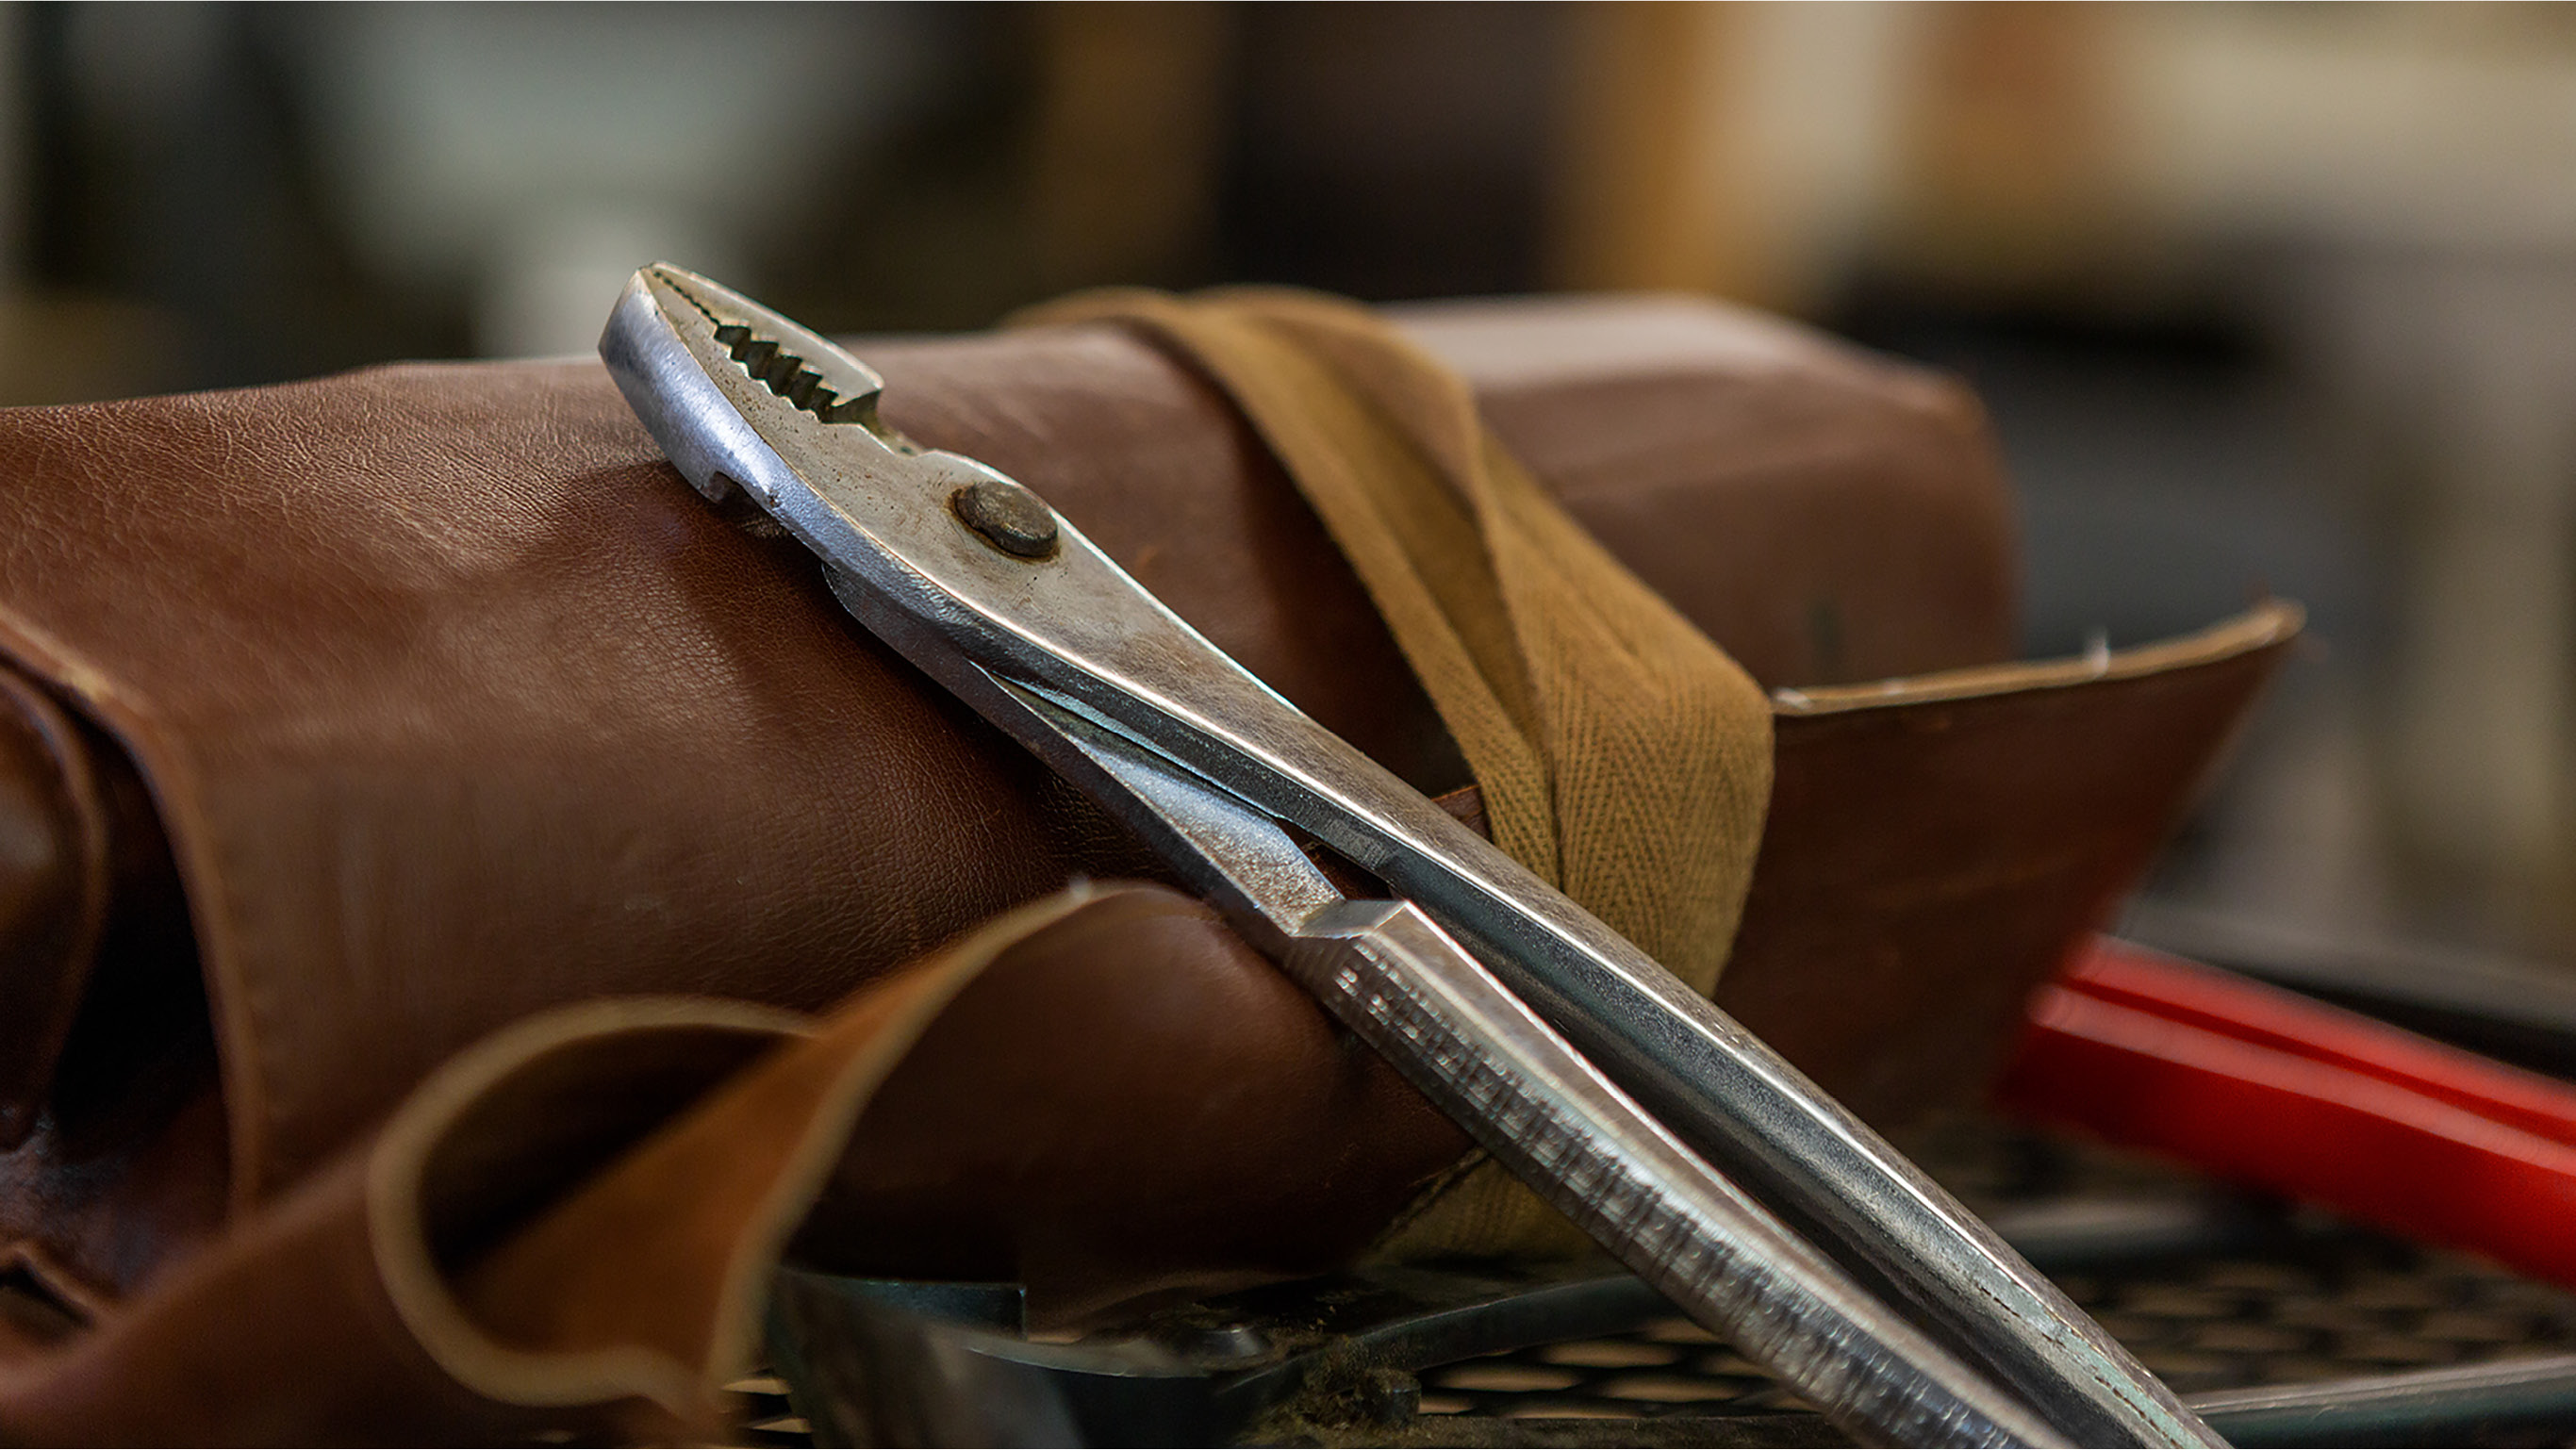 A photo of pliers on top of a leather bonsai tool bag.